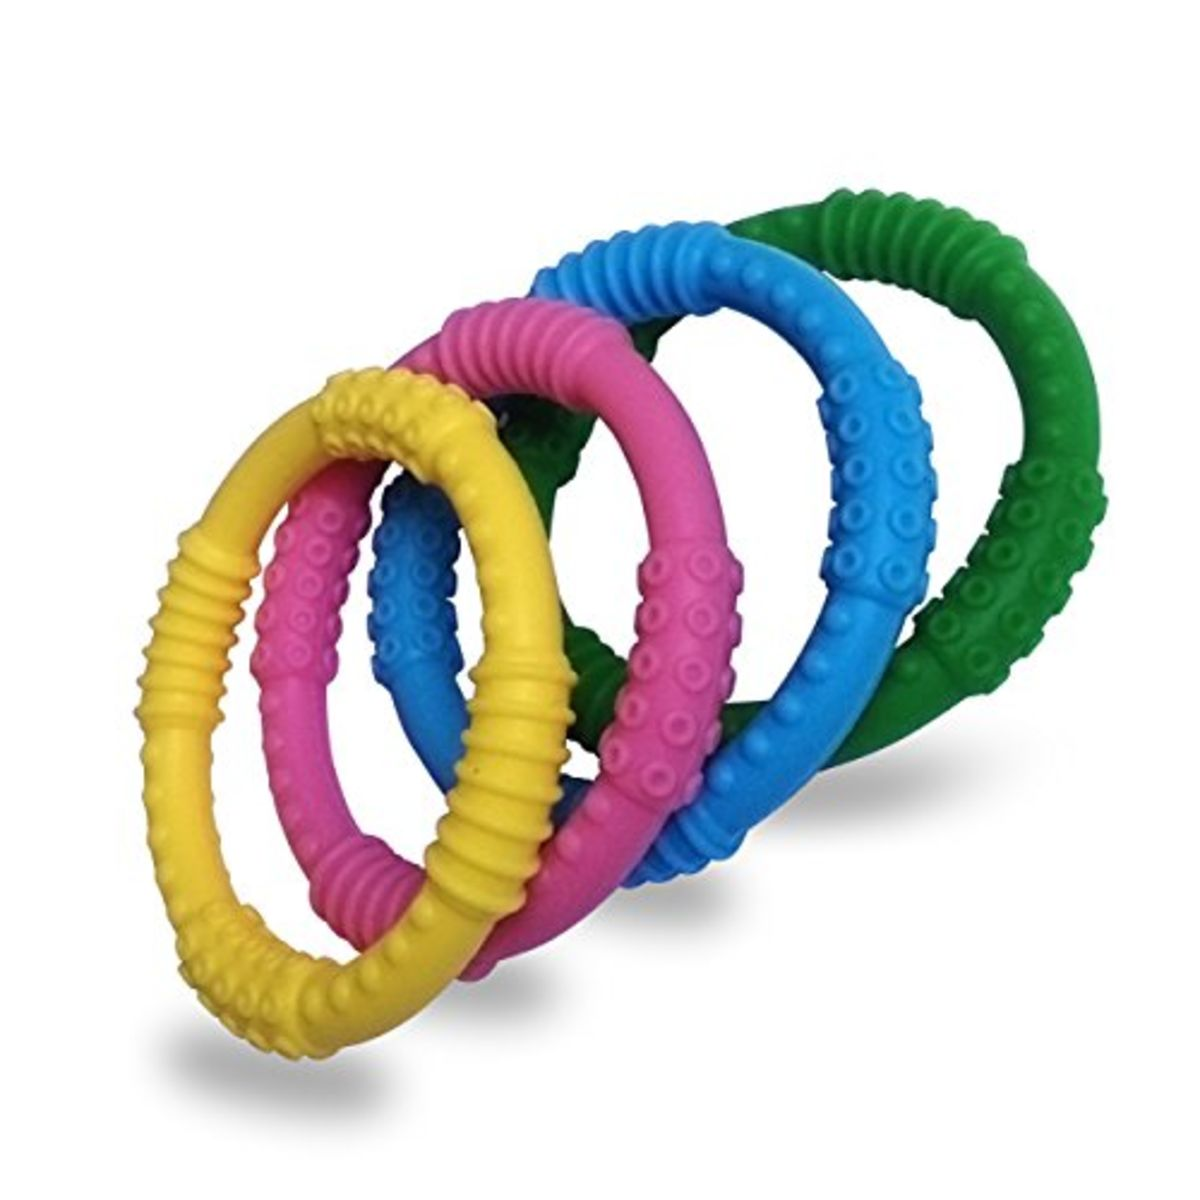 Top Rated Teething Rings For Babies A Listly List